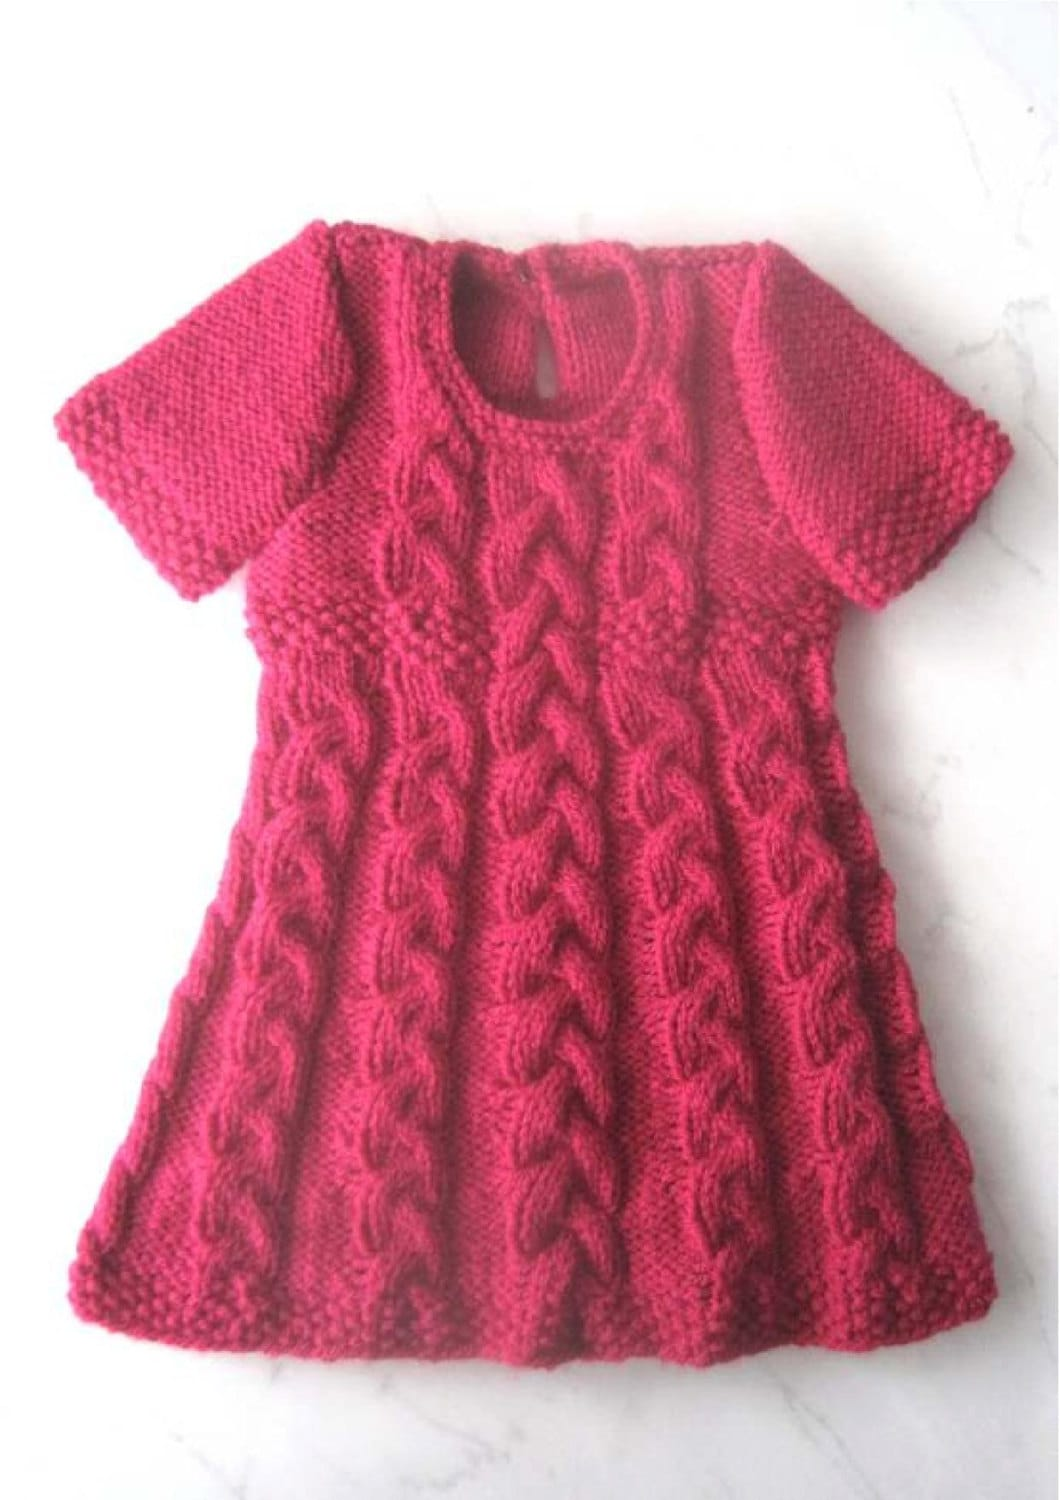 Baby Dress Knitting Pattern Instant Download PDF 6 sizes